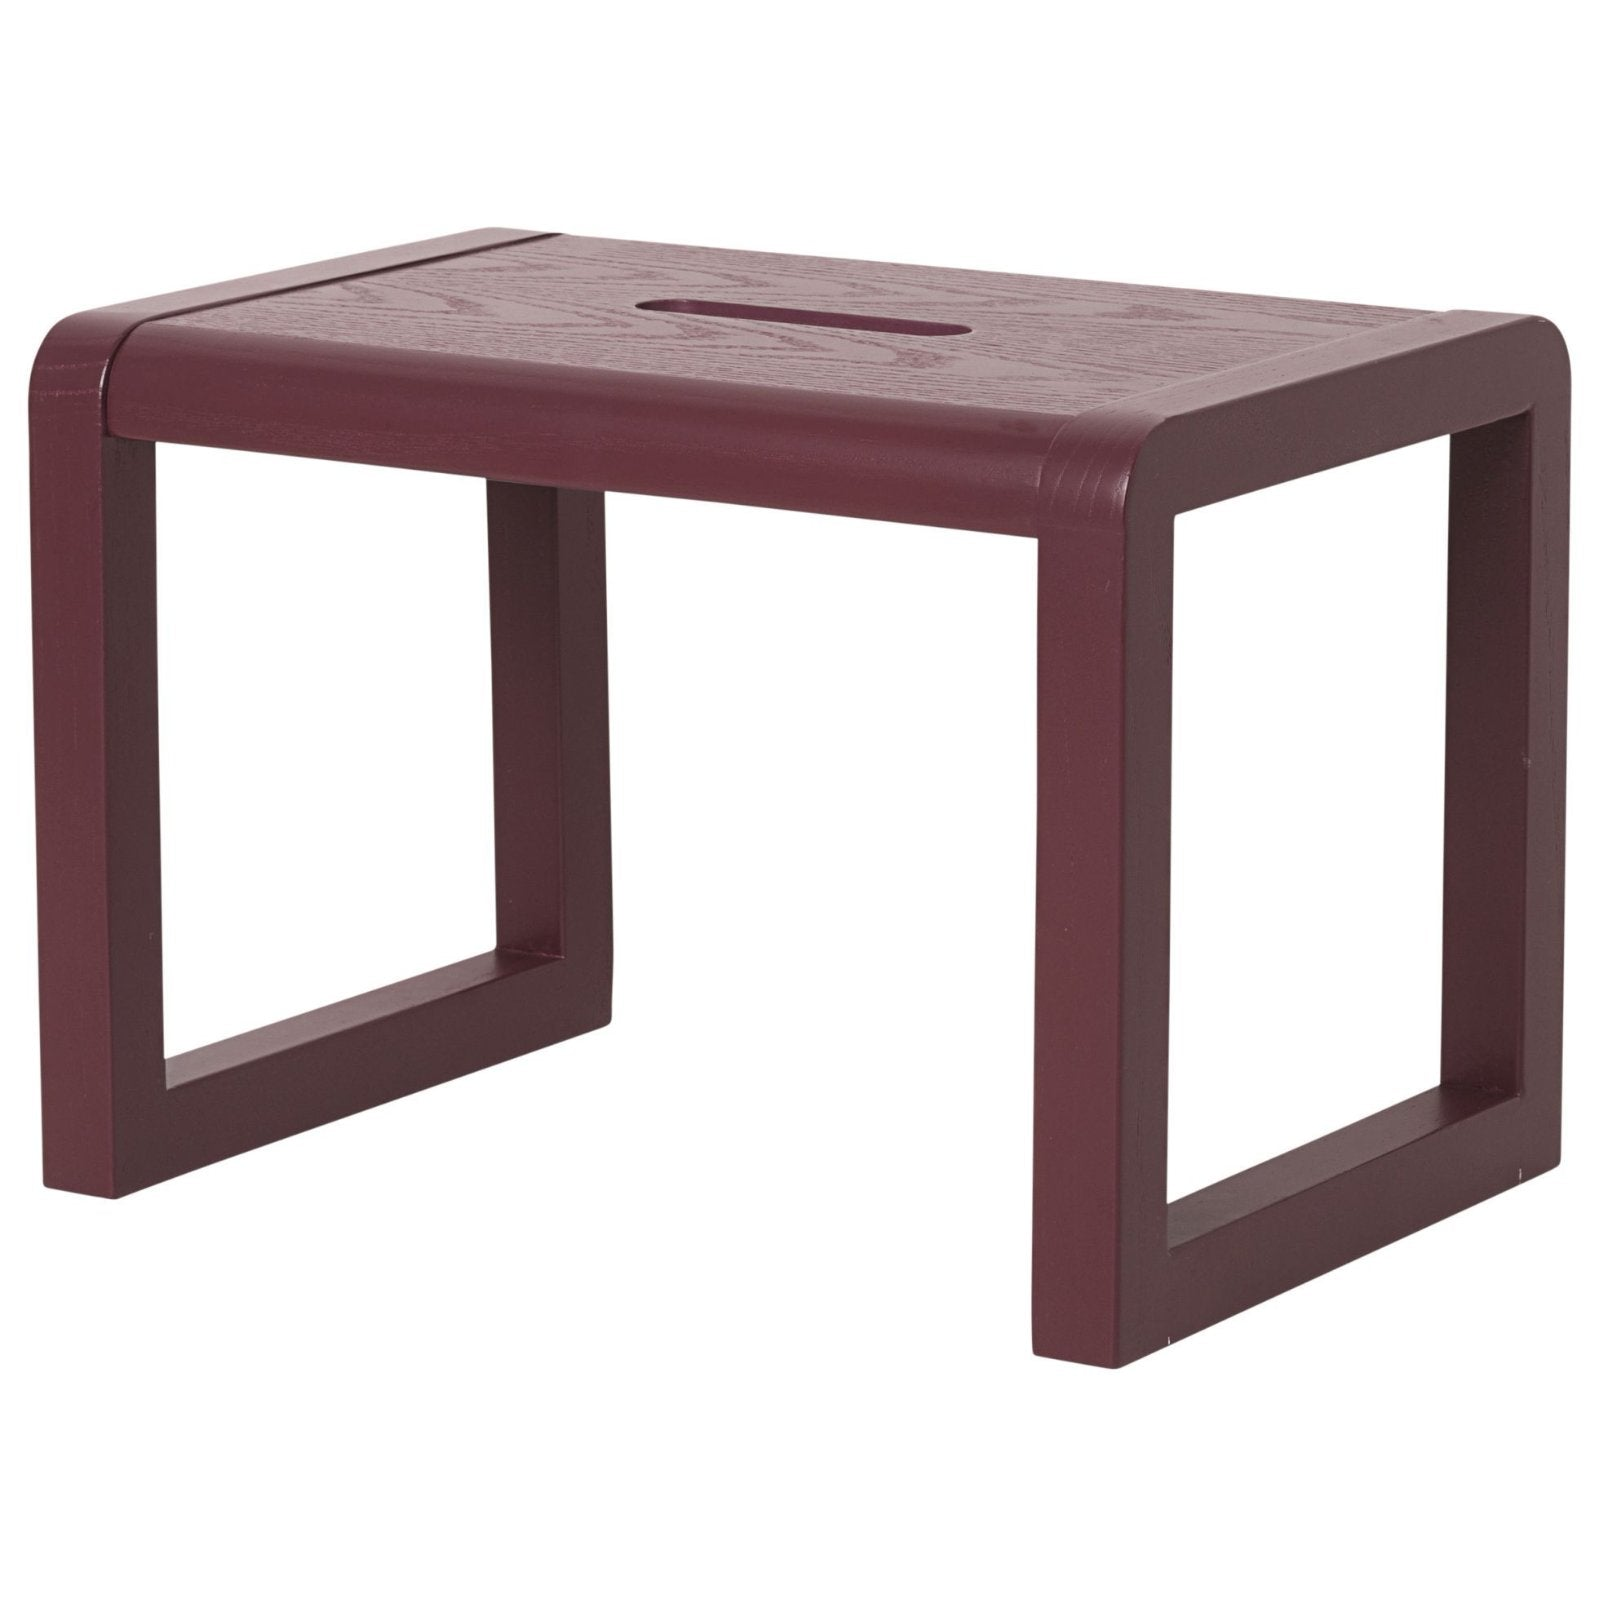 Little Architect Stool in Bordeaux design by Ferm Living